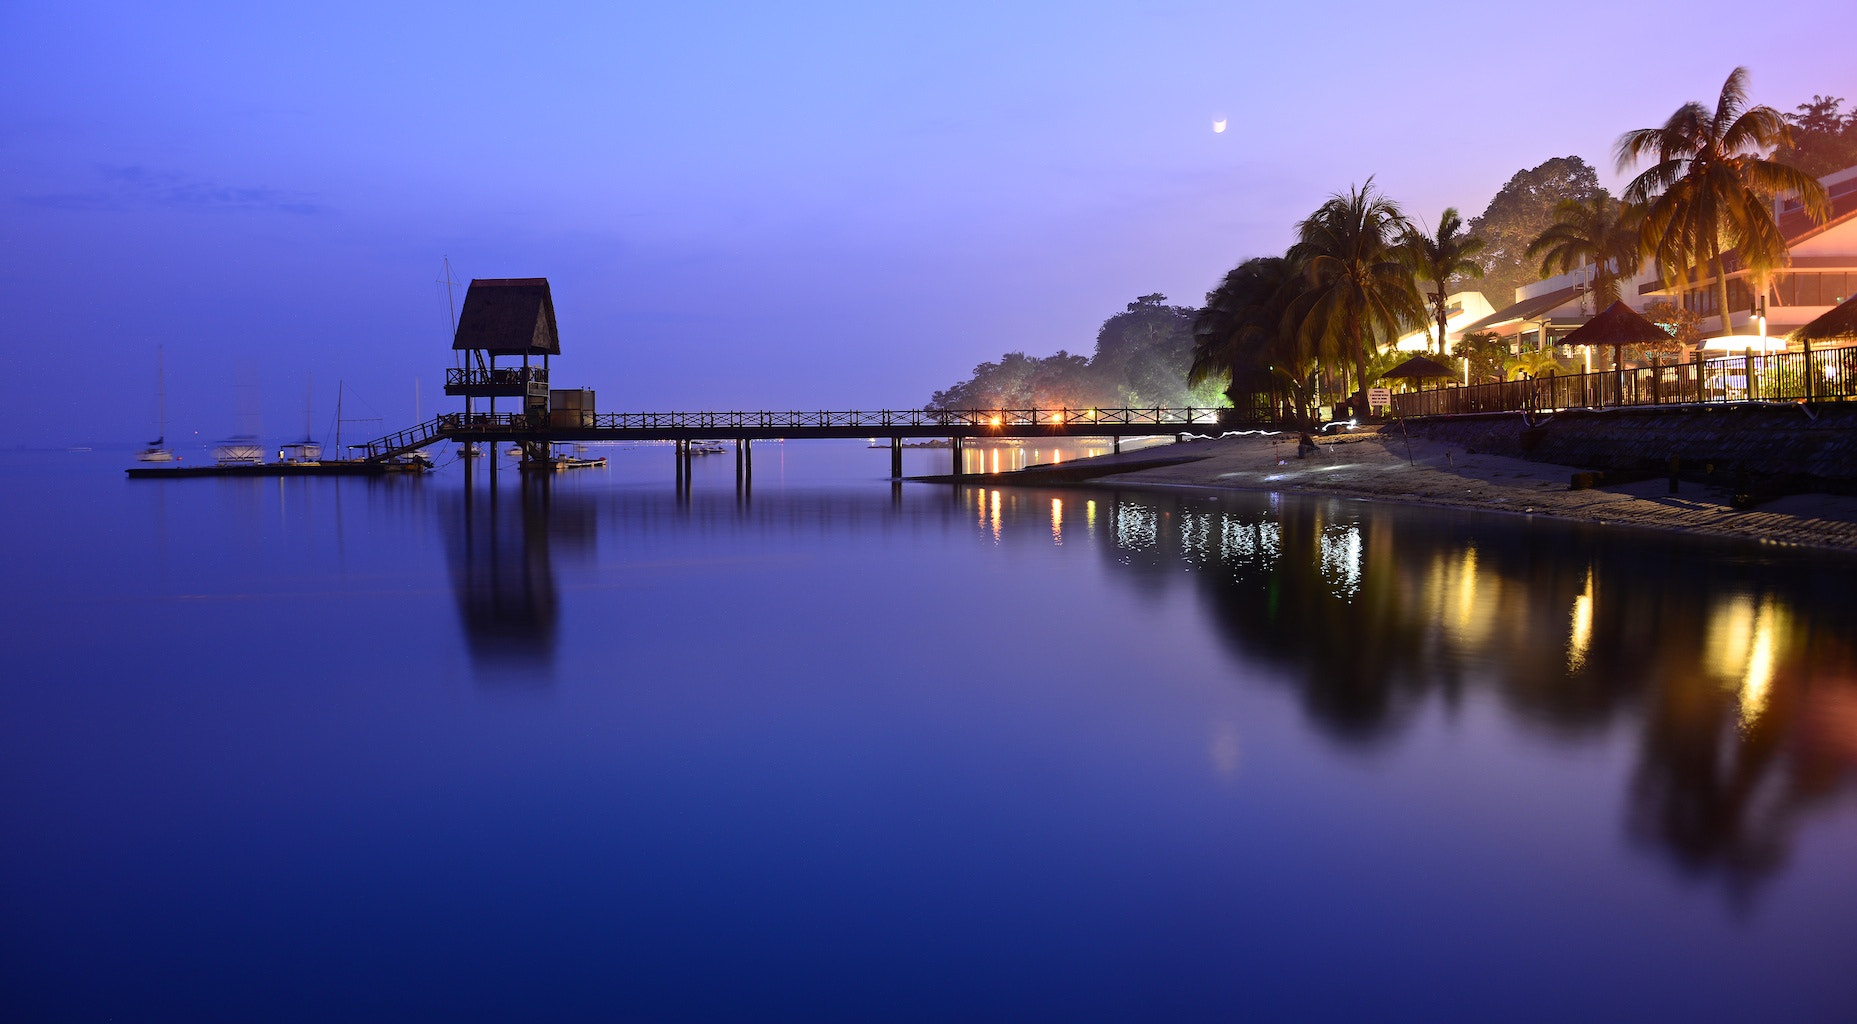 Photograph Changi Sailing Club, SIngapore by Richard Lim on 500px